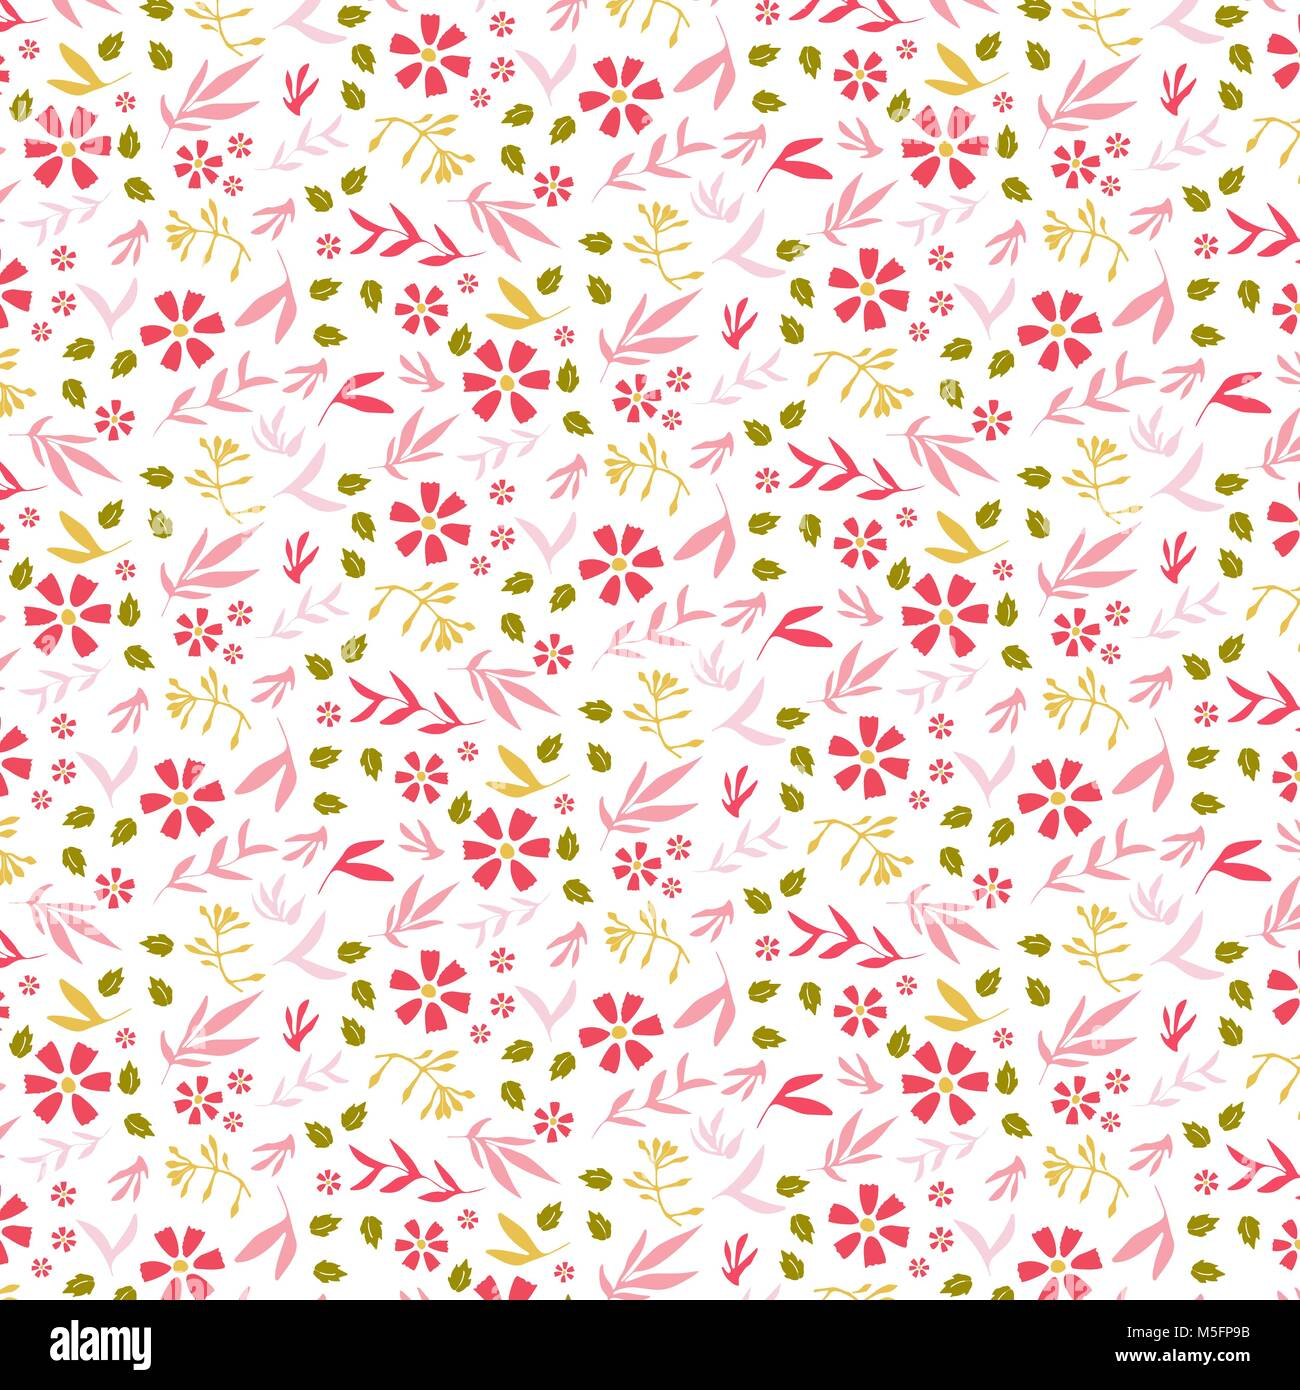 Pink Flowers Background Flower Colorful Doodles Hand Drawn Stock